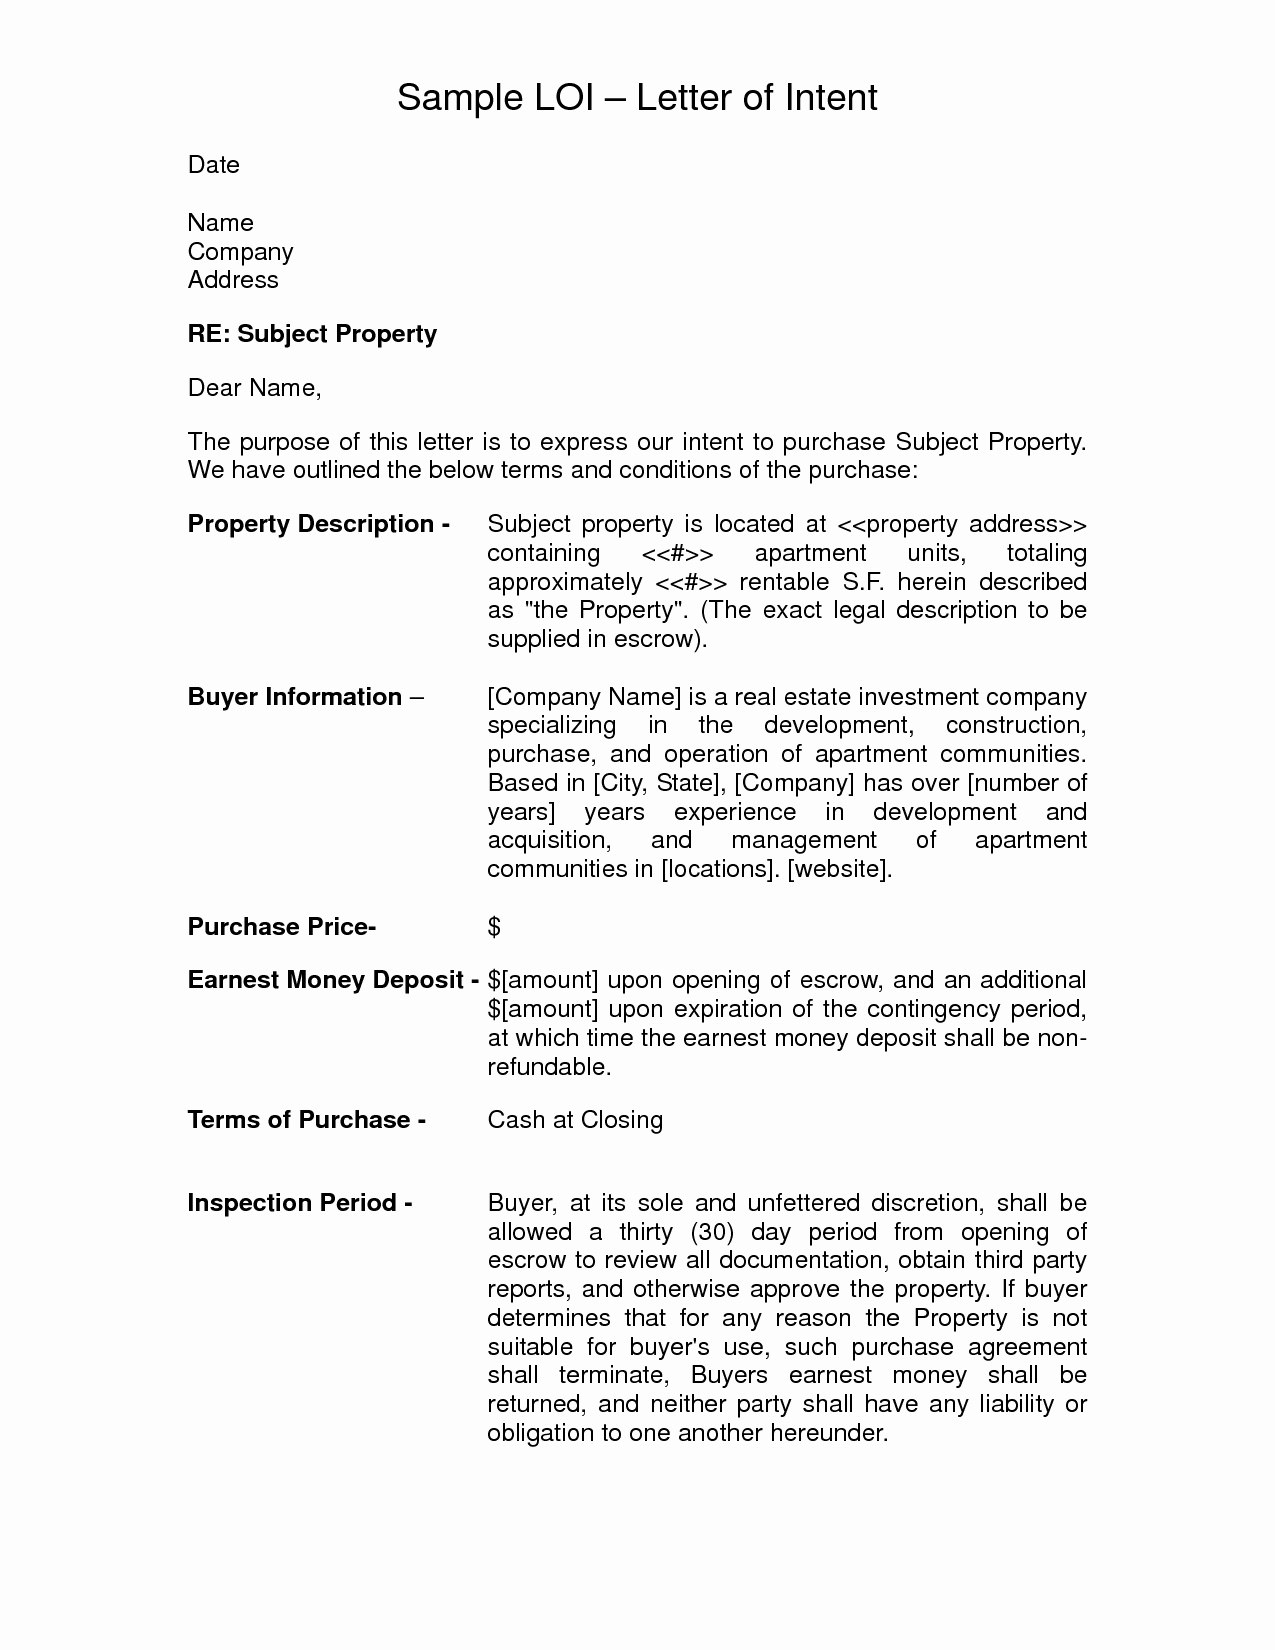 Letter Of Intent To Purchase Real Estate Template Examples  Letter Pertaining To Letter Of Intent For Real Estate Purchase Template